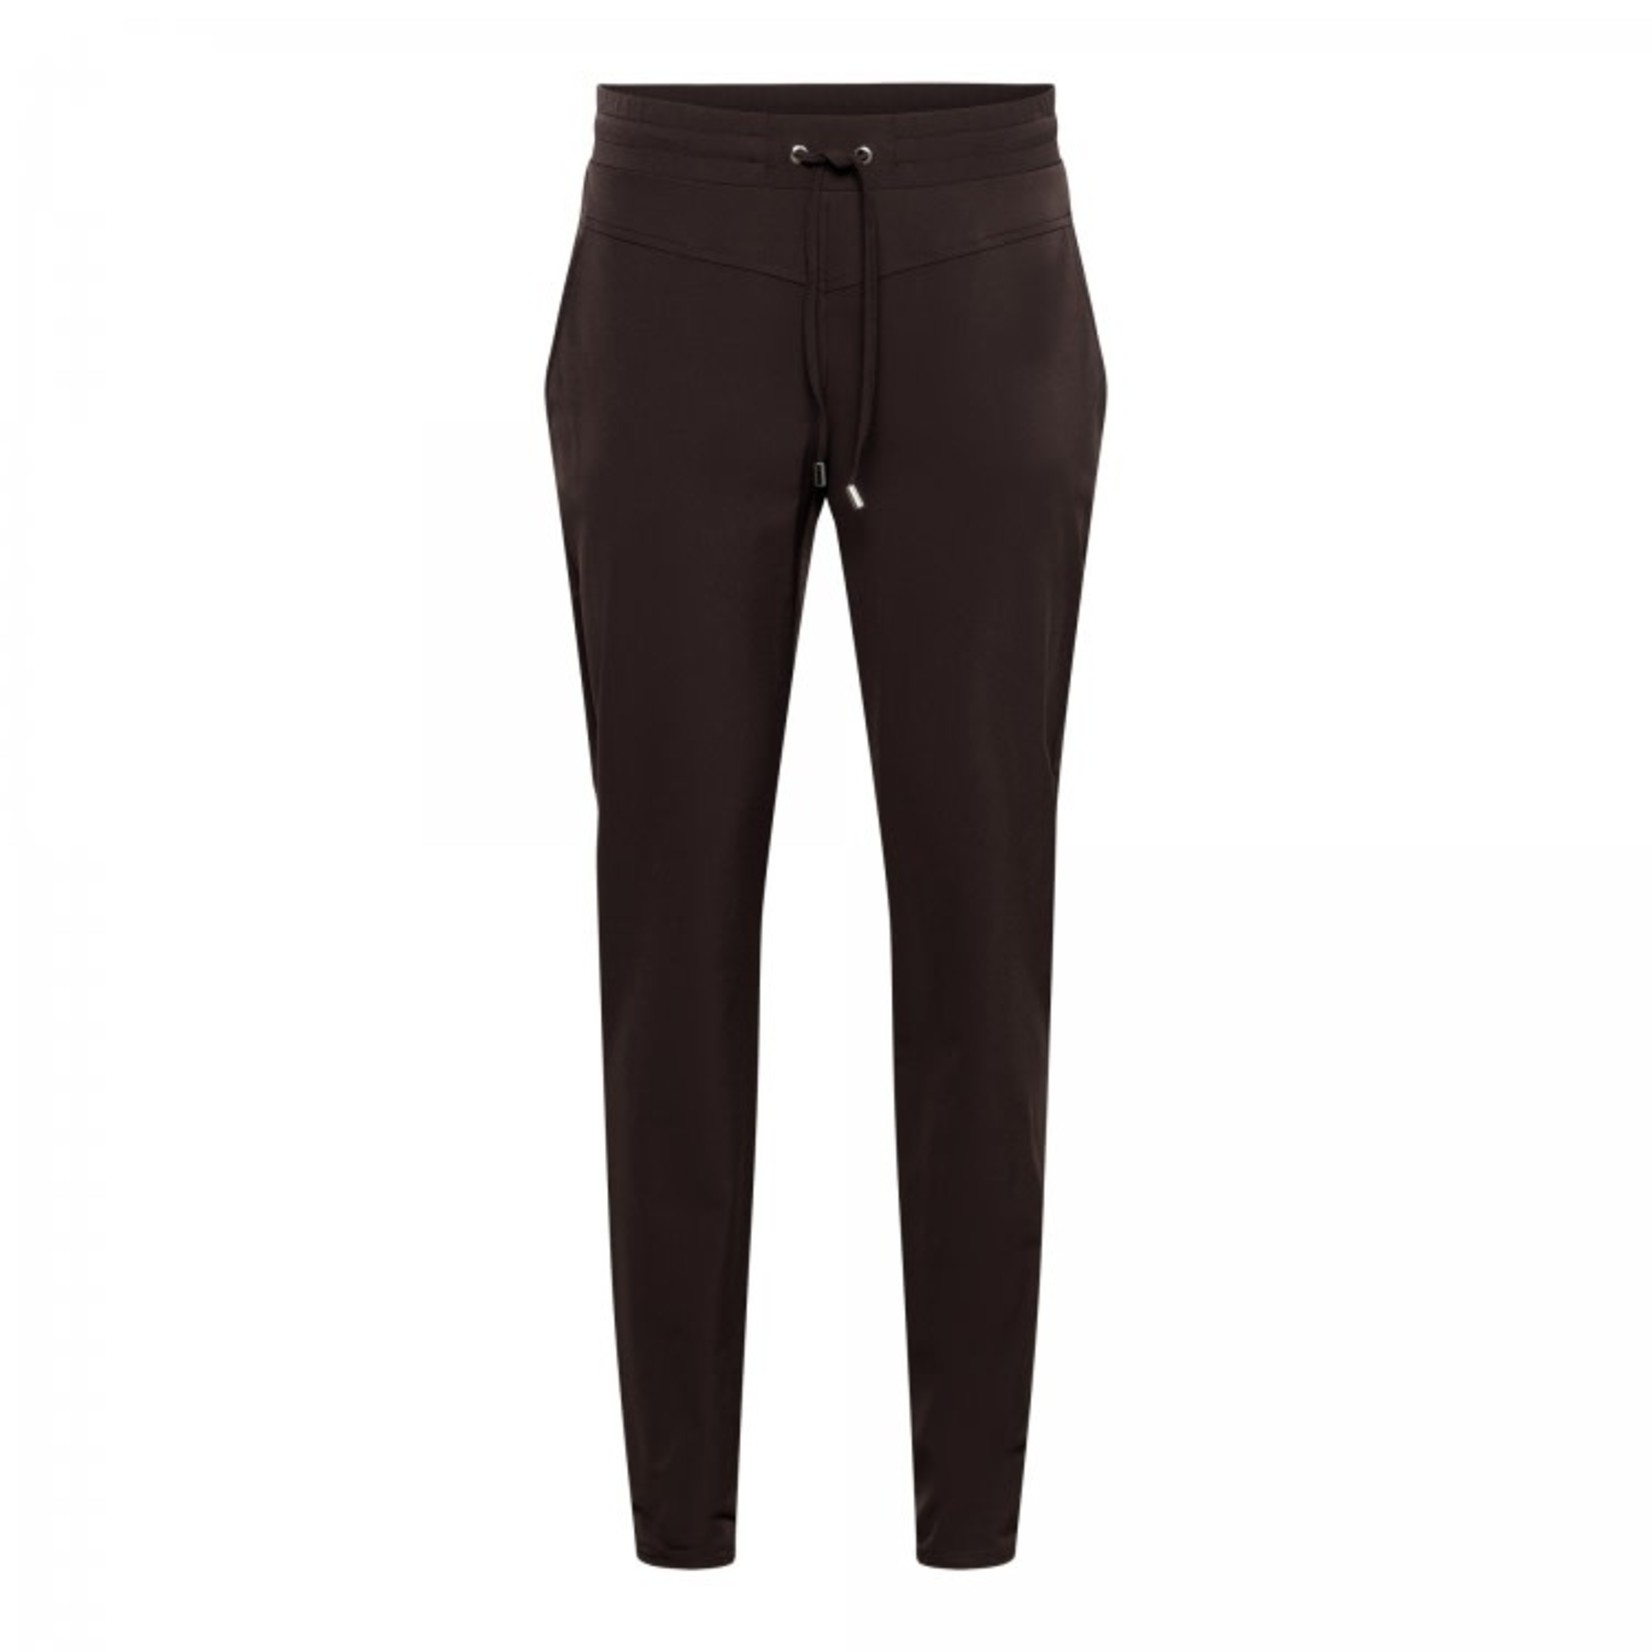 & Co & Co Penny Pants Brown